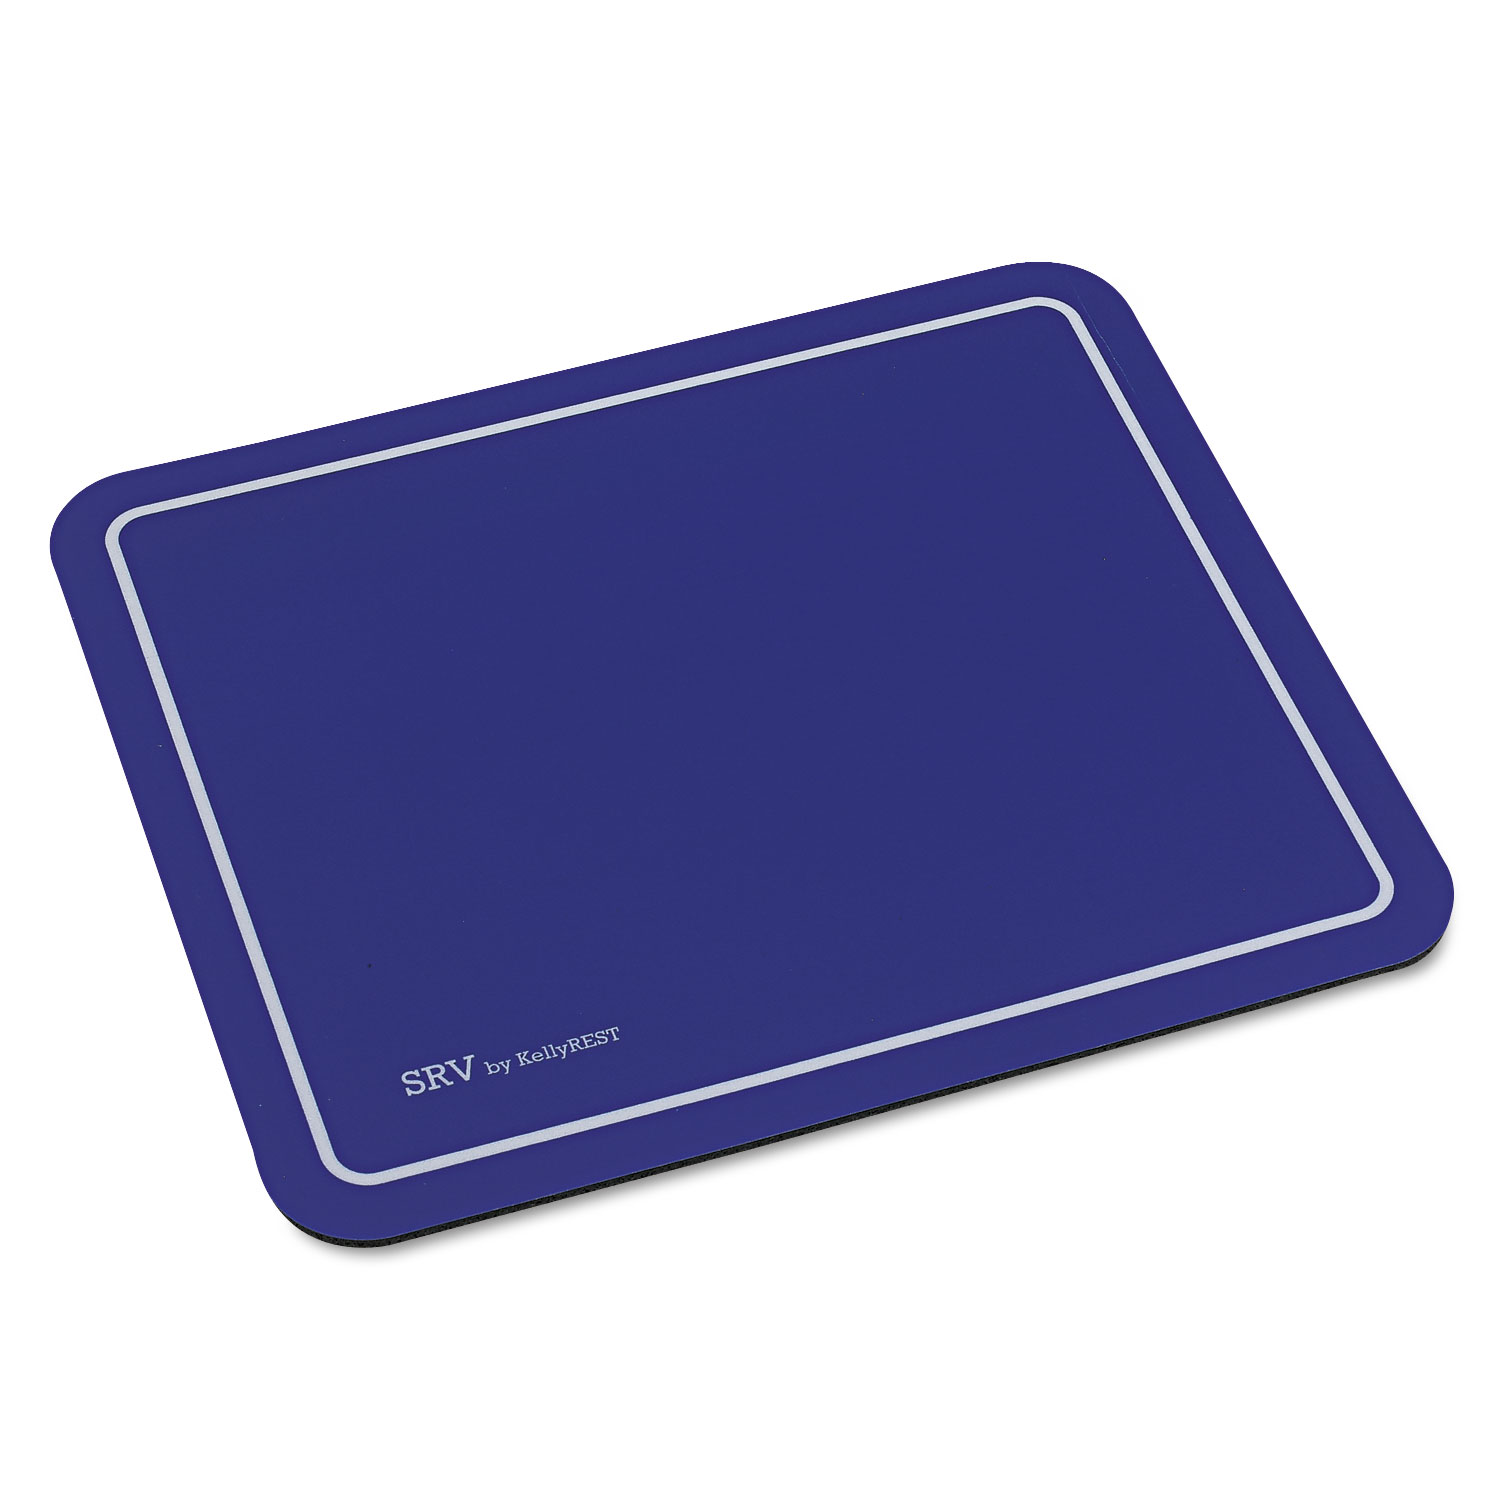 Special Offer Kelly Computer Supply SRV Optical Mouse Pad, Nonskid Base, 9 x 7-3/4 , Blue Before Special Offer Ends